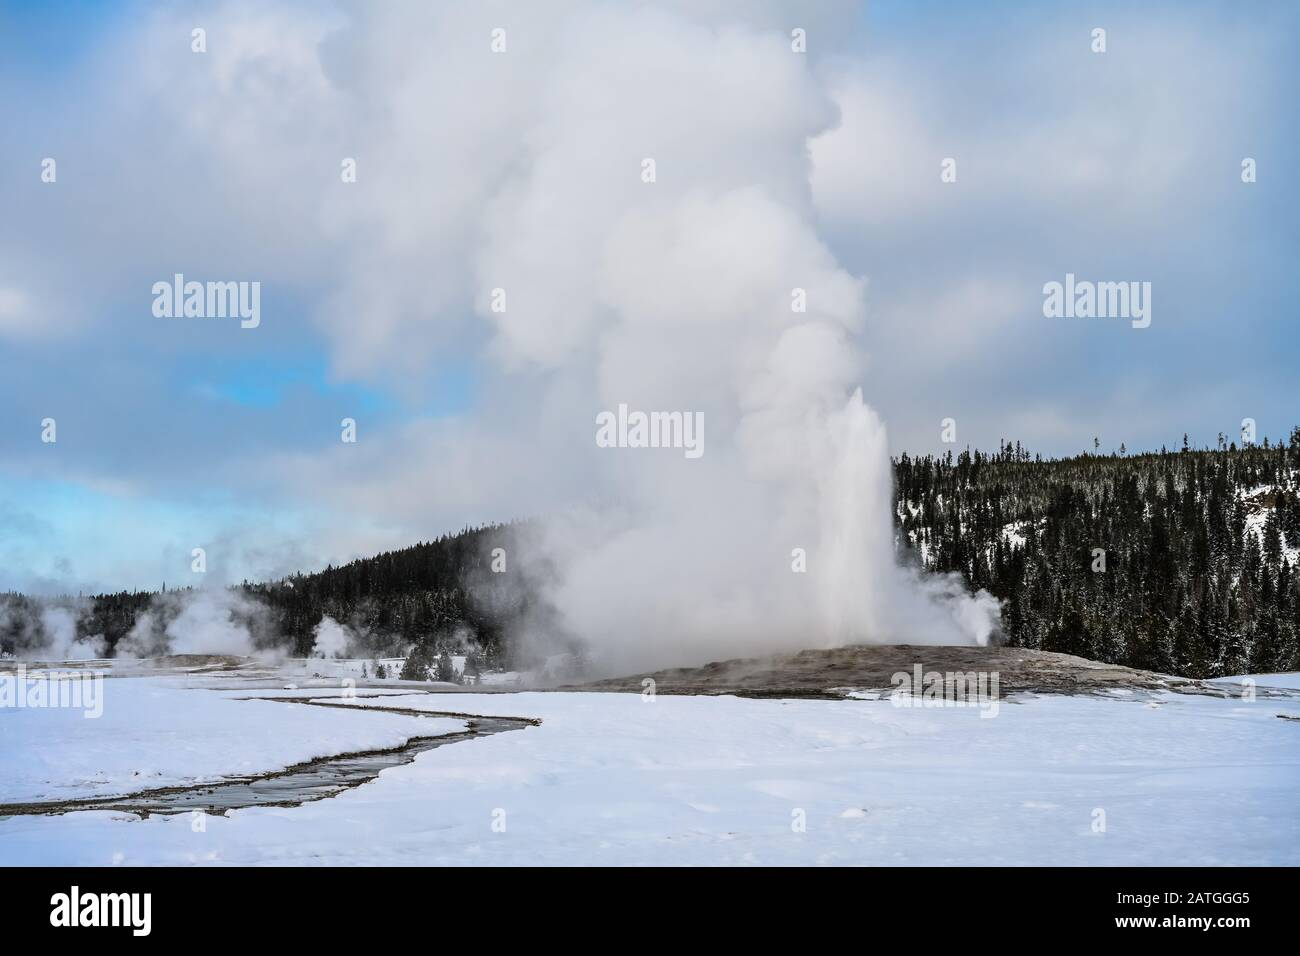 The Old Faithful geyser erupts in a winter day, spewing steam and hot water high in the sky. Yellowstone National Park, Wyoming, USA. Stock Photo